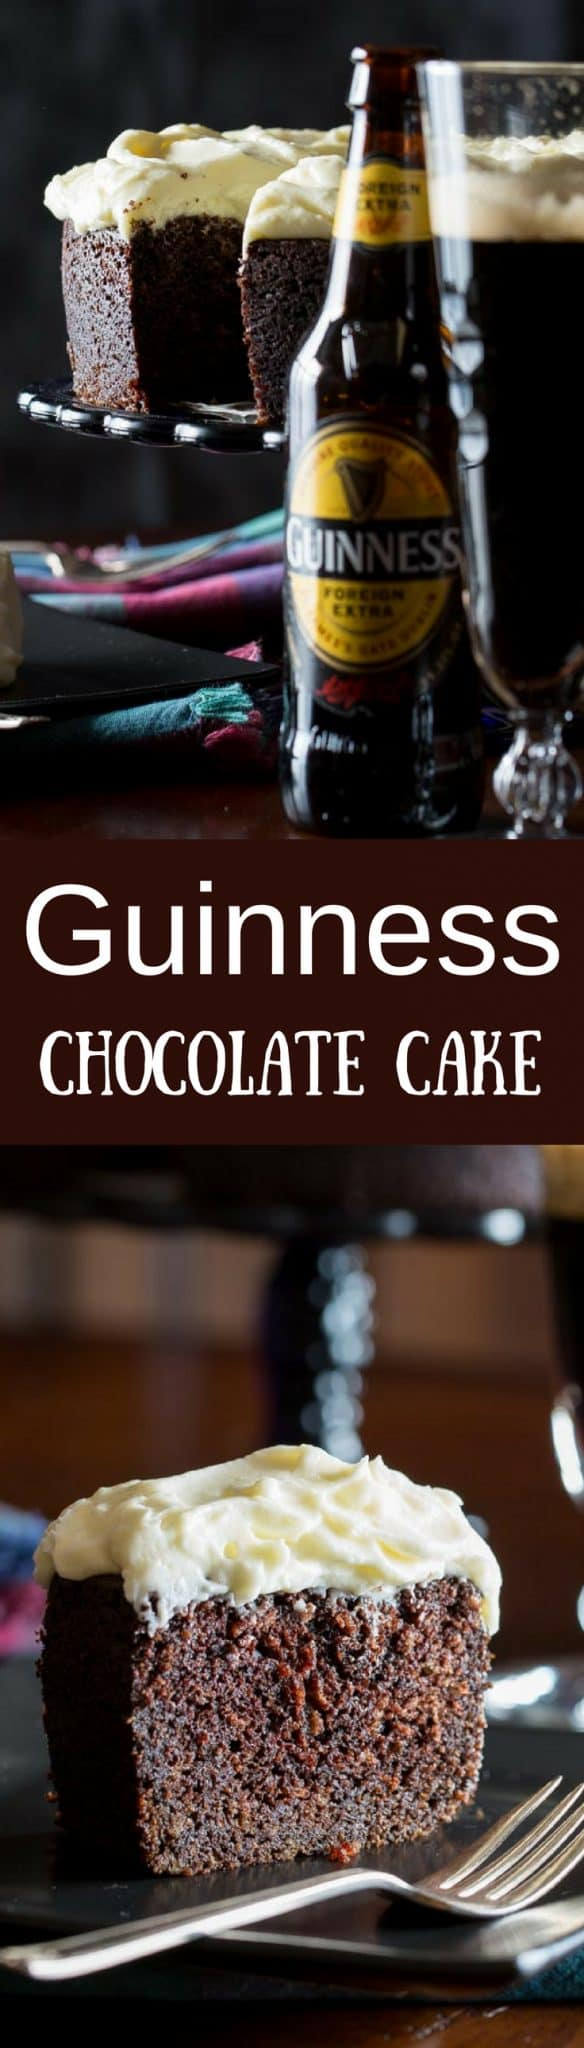 Guinness Chocolate Cake - A lightly sweet and moist chocolate cake, with wonderfully interesting spicy notes from the stout Guinness Foreign Extra Beer. Perfect for St. Patrick's Day or for the chocolate lover in your home! www.savingdessert.com